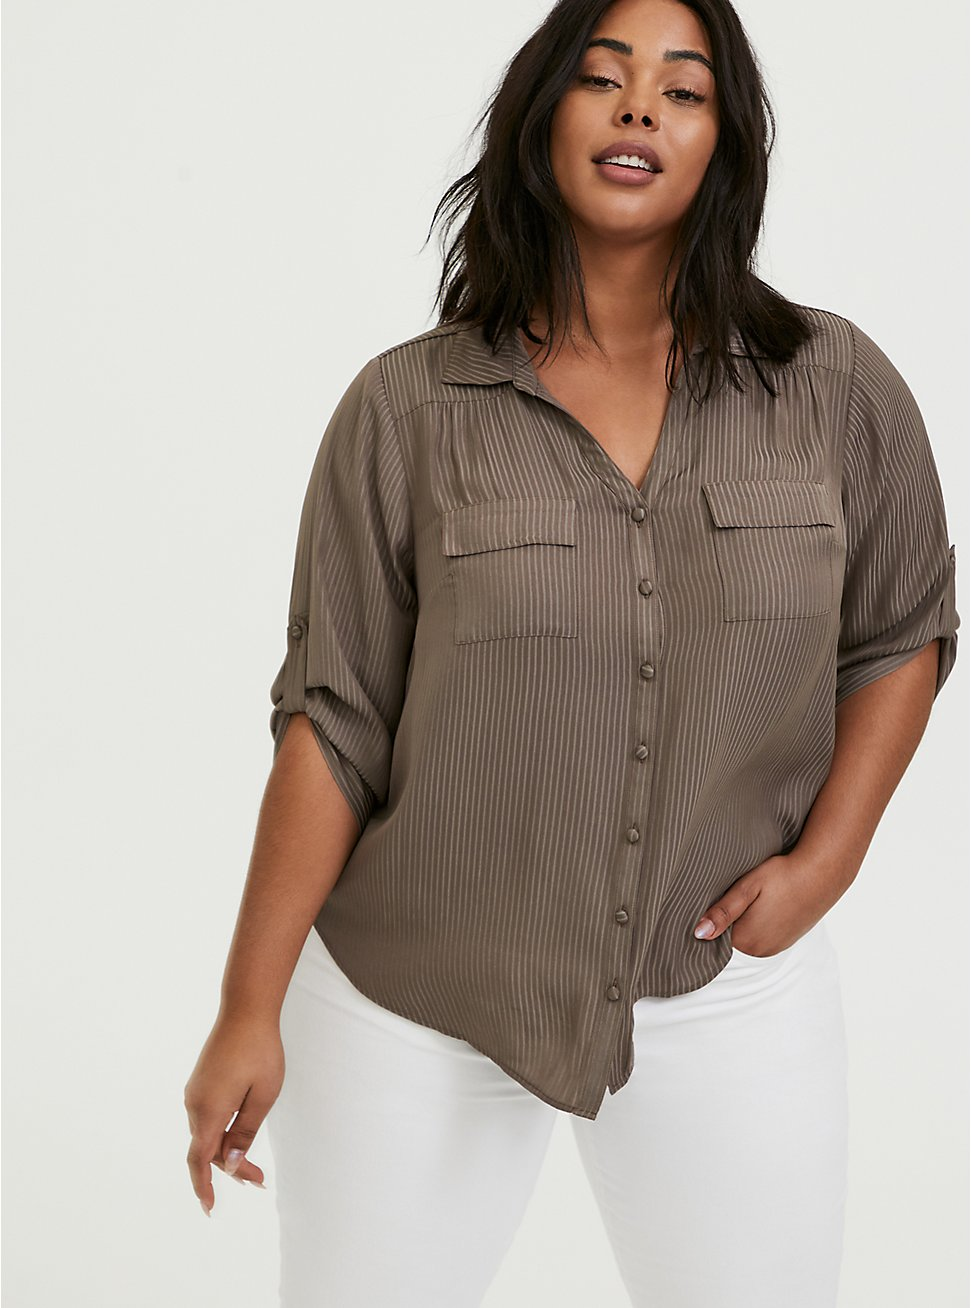 Madison - Dark Taupe Satin Shadow Stripe Button Front Blouse, FALCON, hi-res